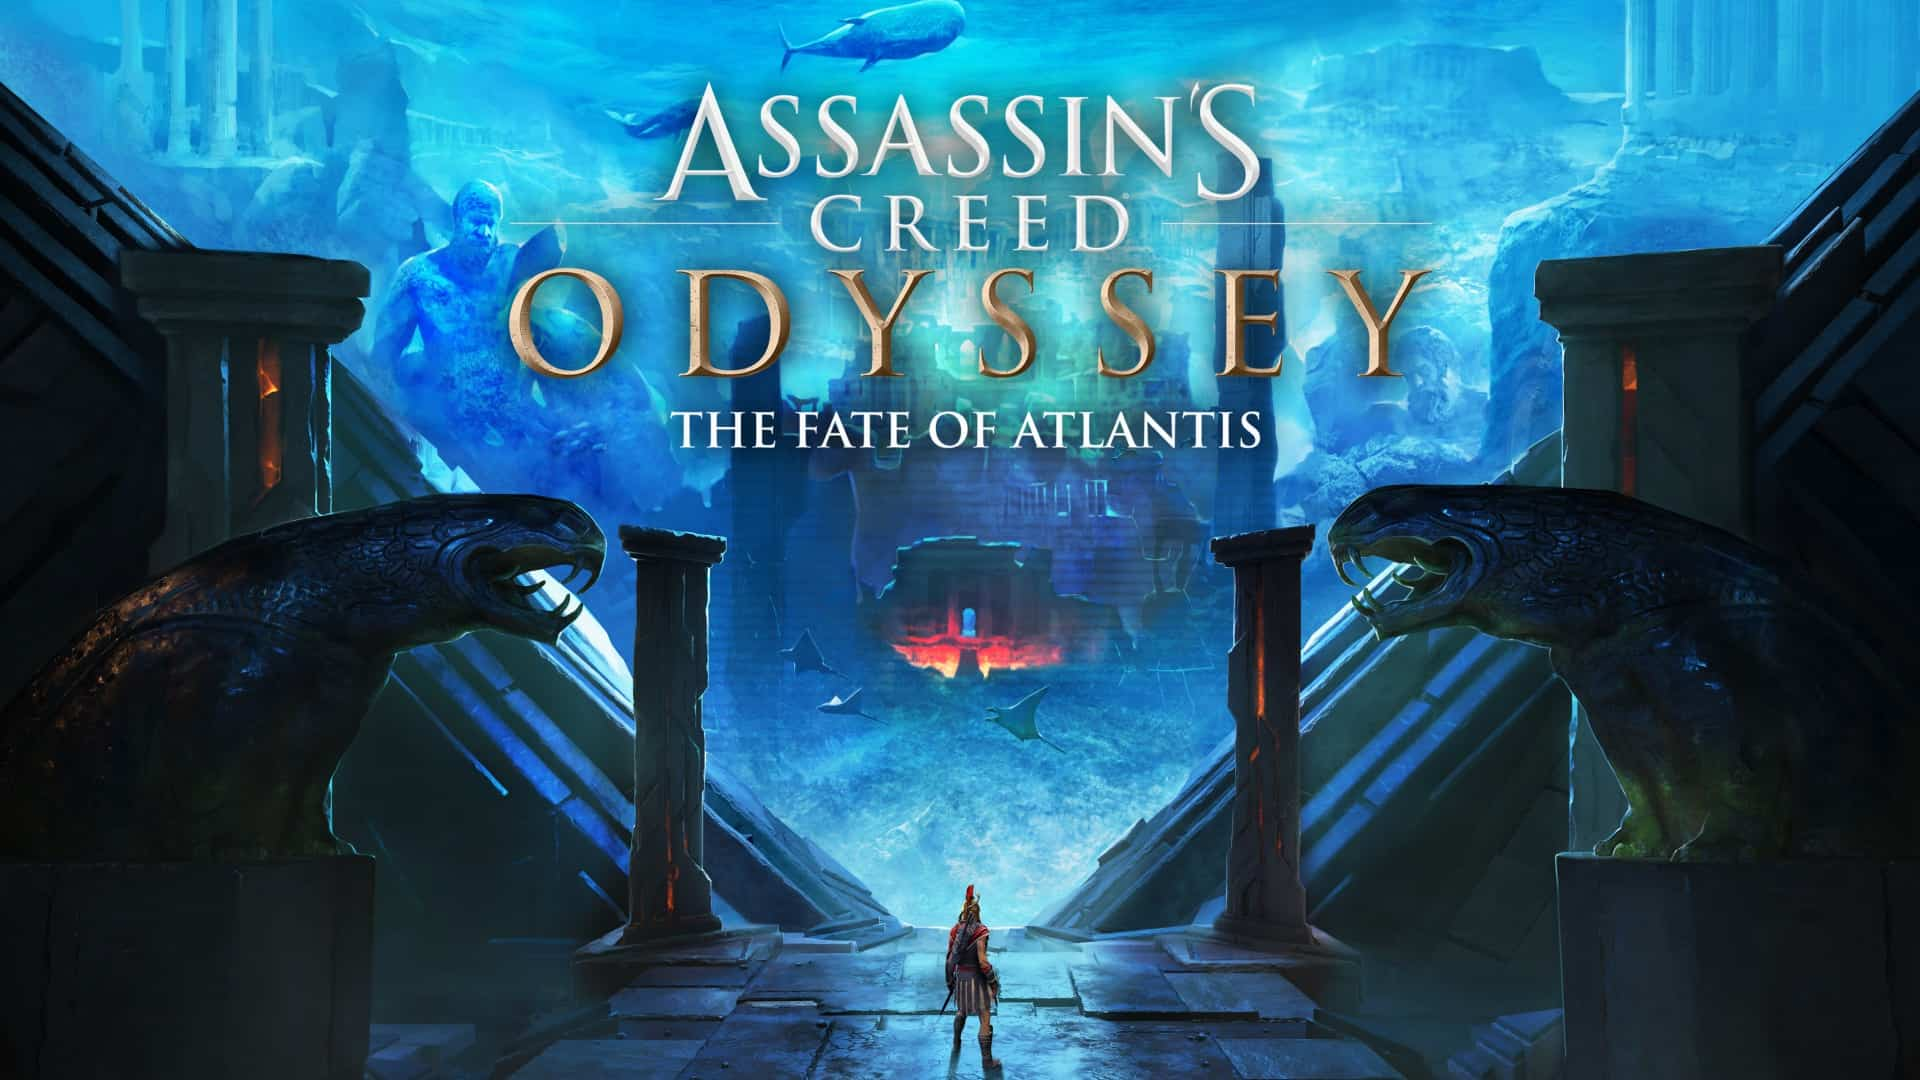 The Final Episode Of Assassin's Creed Odyssey: The Fate Of Atlantis Now Available